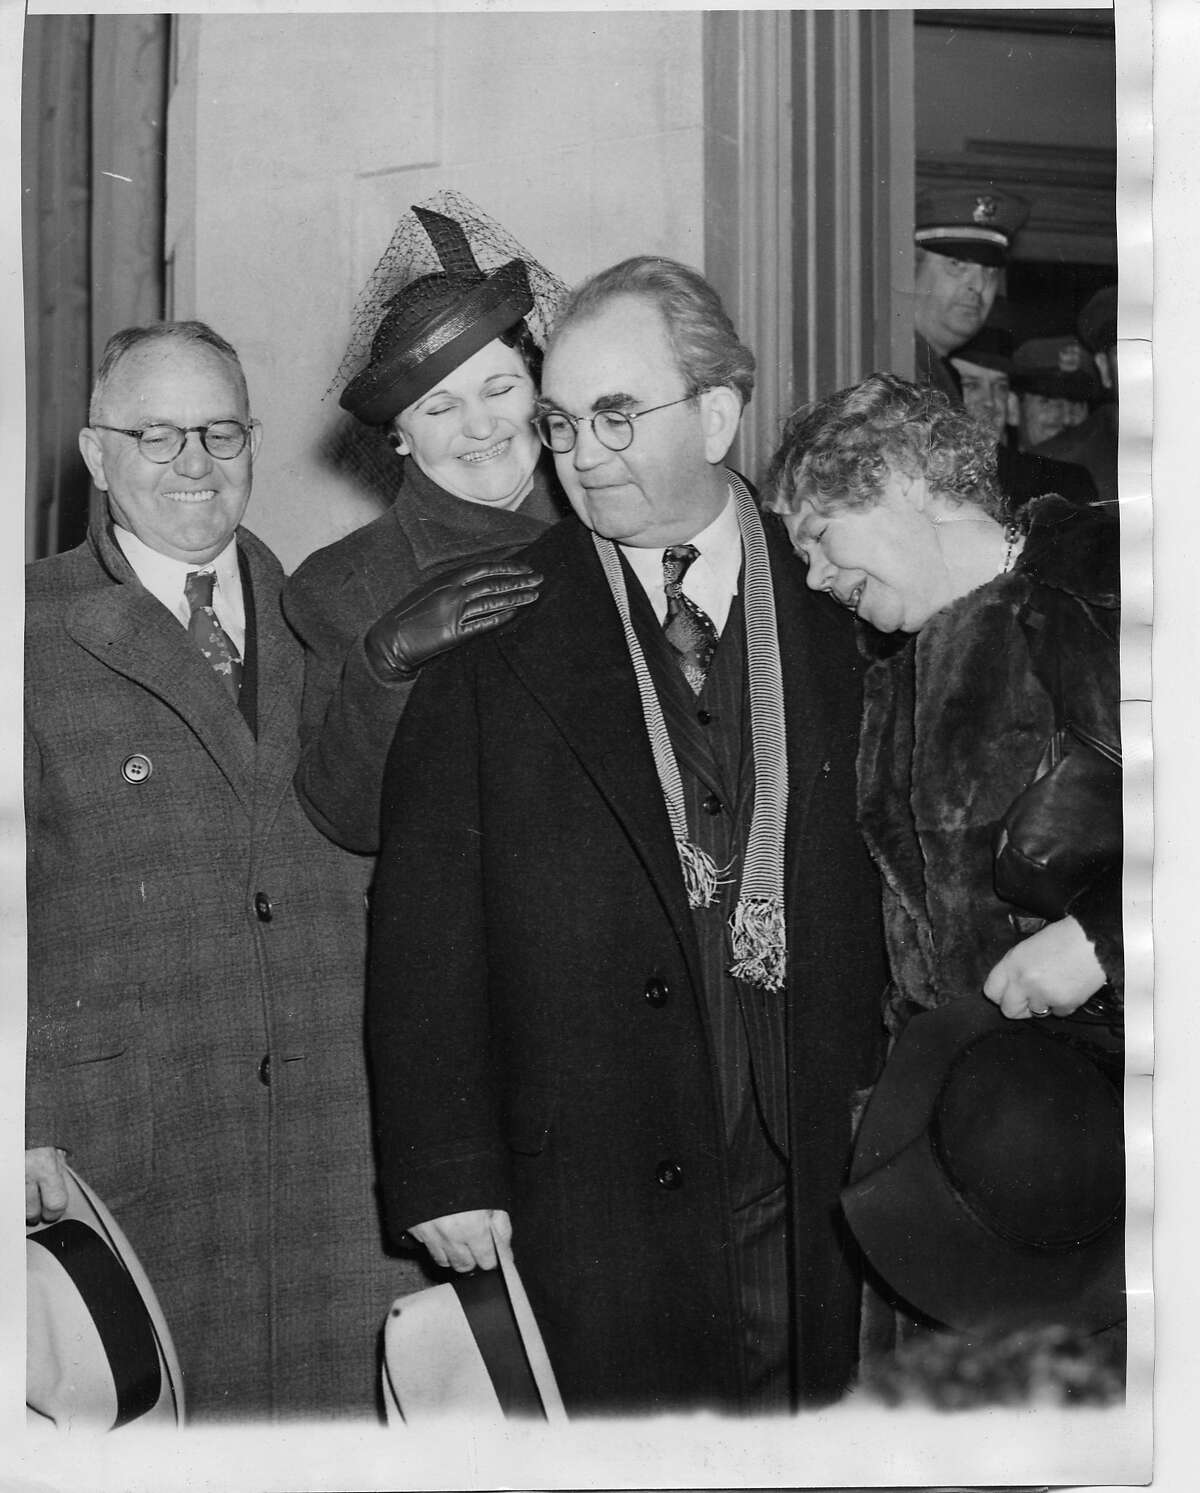 Tom Mooney was greeted by his brother John, left, his sister Anna Mooney, and, Rena Mooney , sobbing. when he left San Quentin Prison 1/7/1939. The prison was Mooney's home for more than 22 years. He was convicted and sentenced to death for the 1916 Preparedness Day Parade bombing. His sentence was later commuted to life imprisonment. Associated Press Photo dated 1/01/39